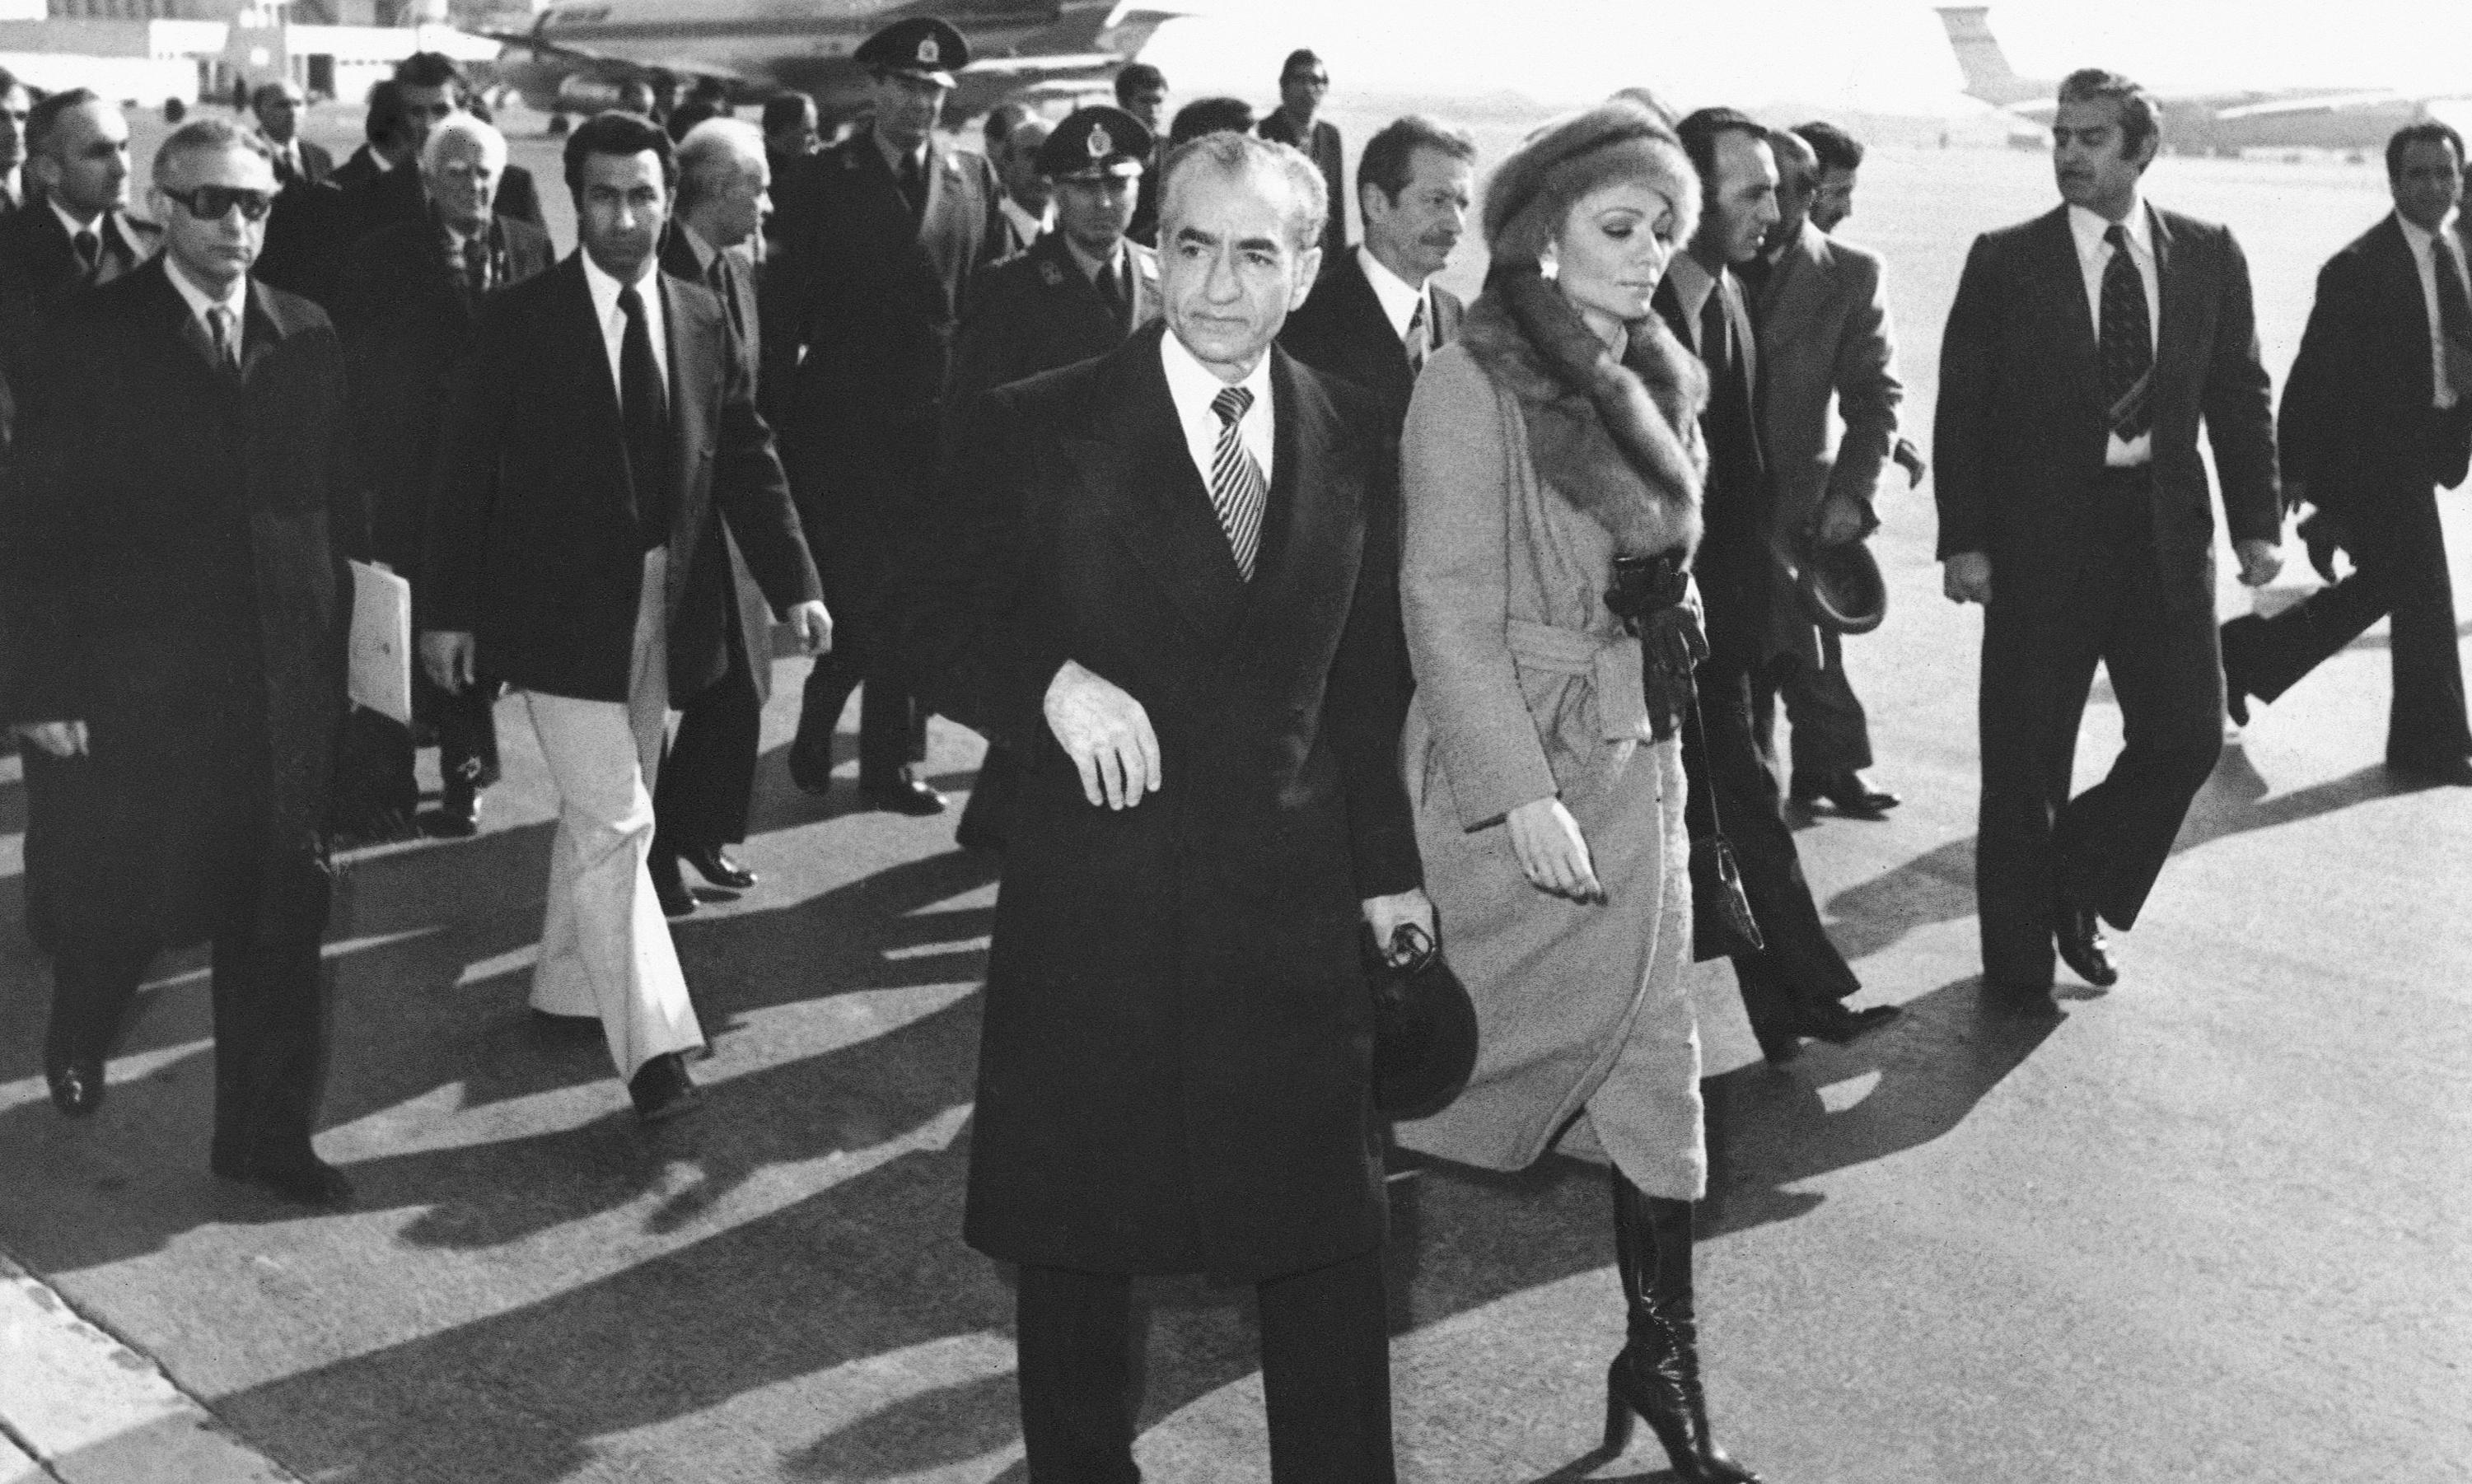 Frenzied rejoicing in Iran as Shah leaves - archive, 17 January 1979